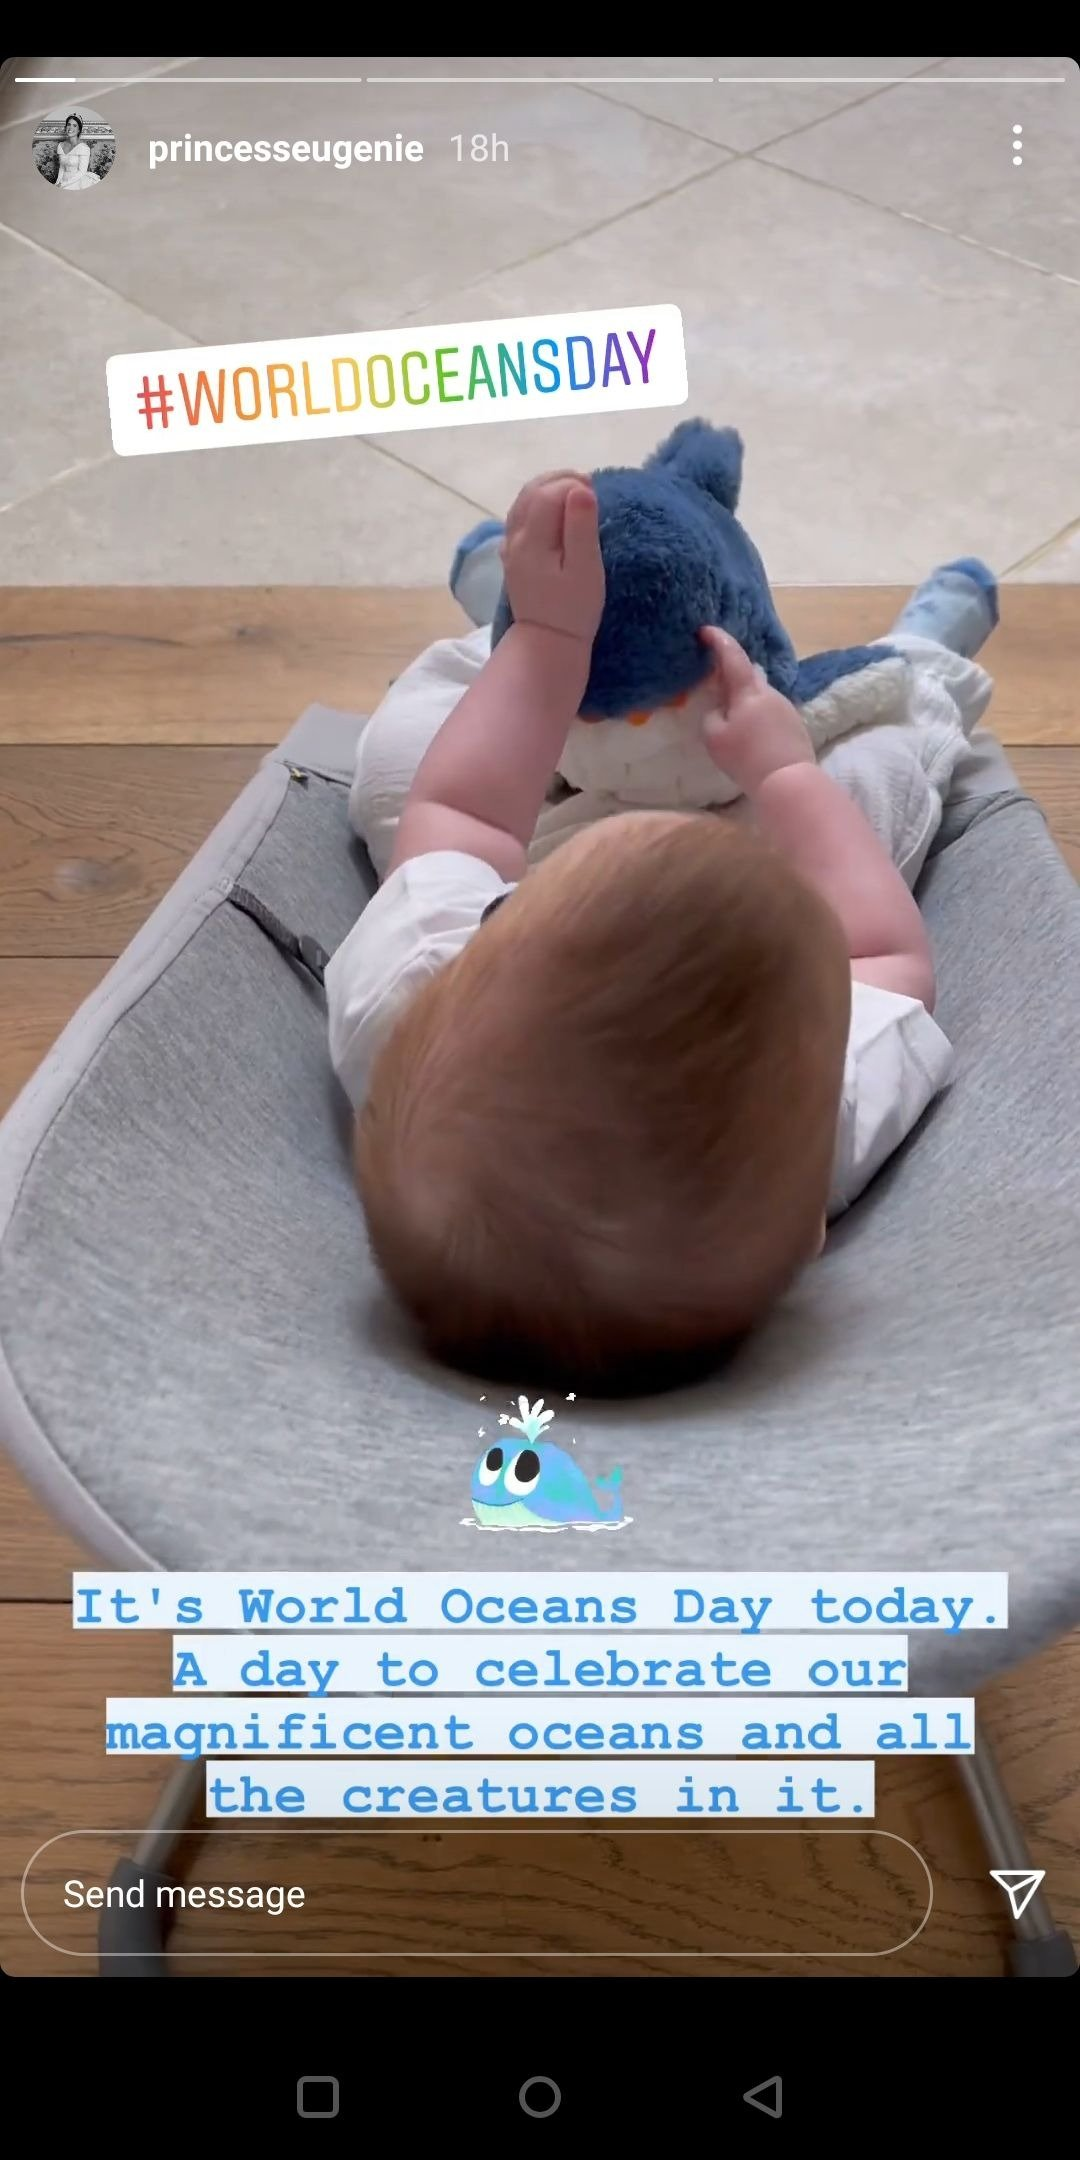 Princess Eugenie's son, August, cuddling a fluffy toy shark for World Oceans Day, 2021, London, England.   Photo: Instagram/princeseugenie